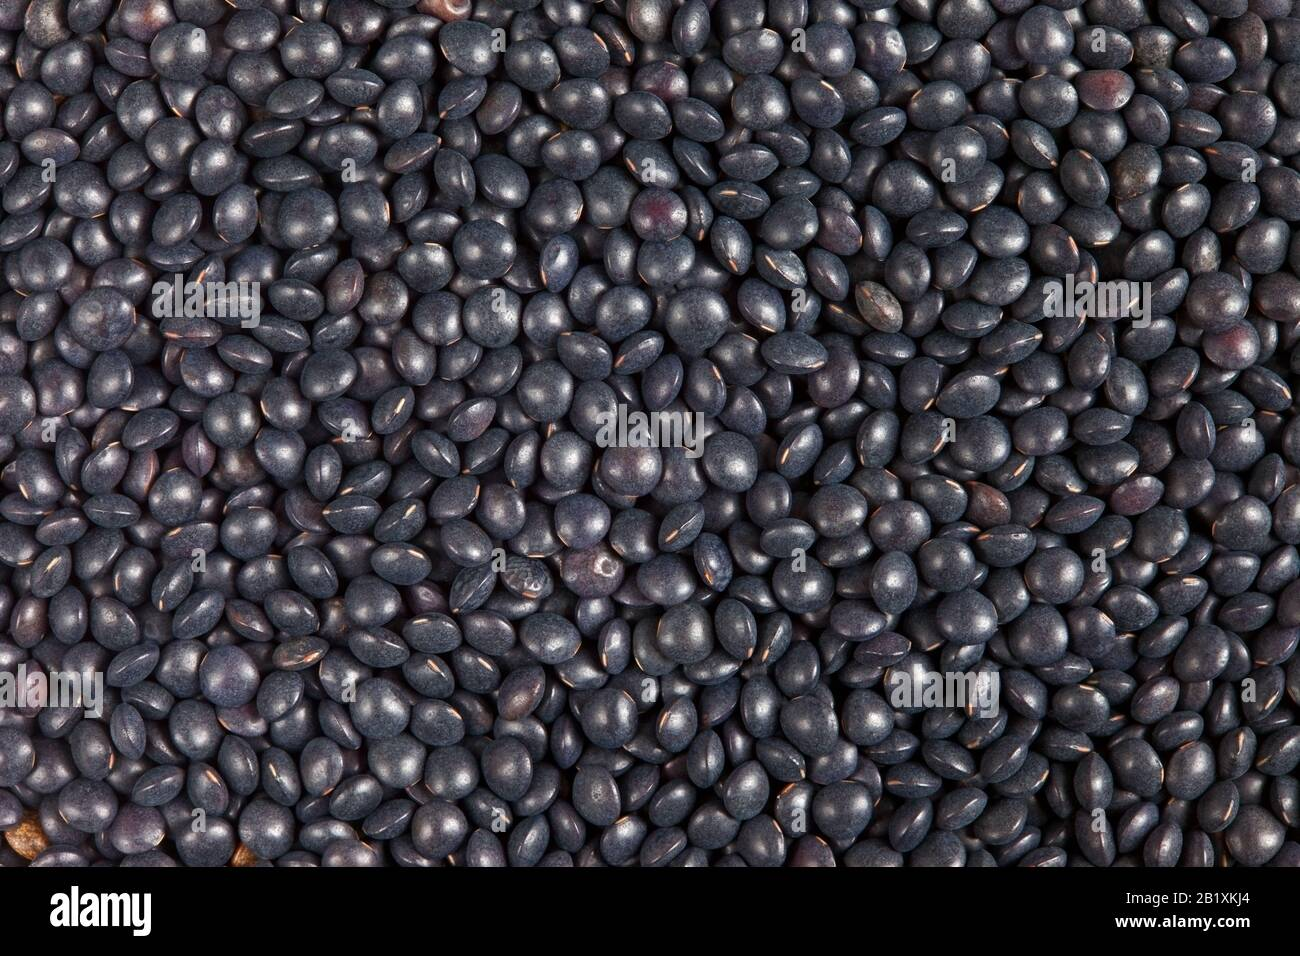 Black Beluga Lentils Texture Background Lentils Are Rich In Protein Carbohydrates Fiber And Low In Fat Stock Photo Alamy